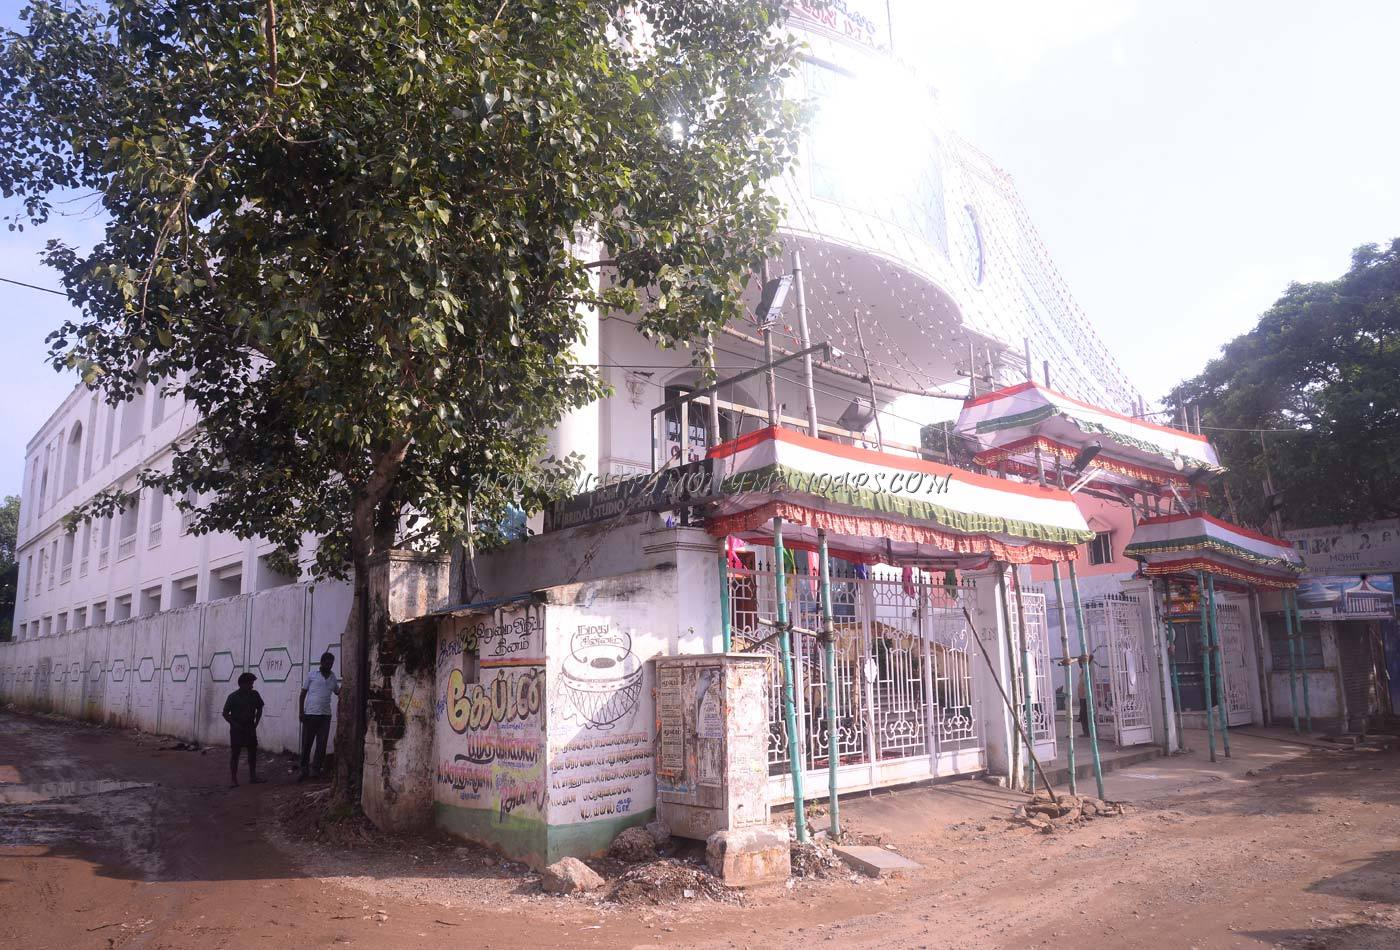 Find More Kalyana Mandapams in Tondiarpet